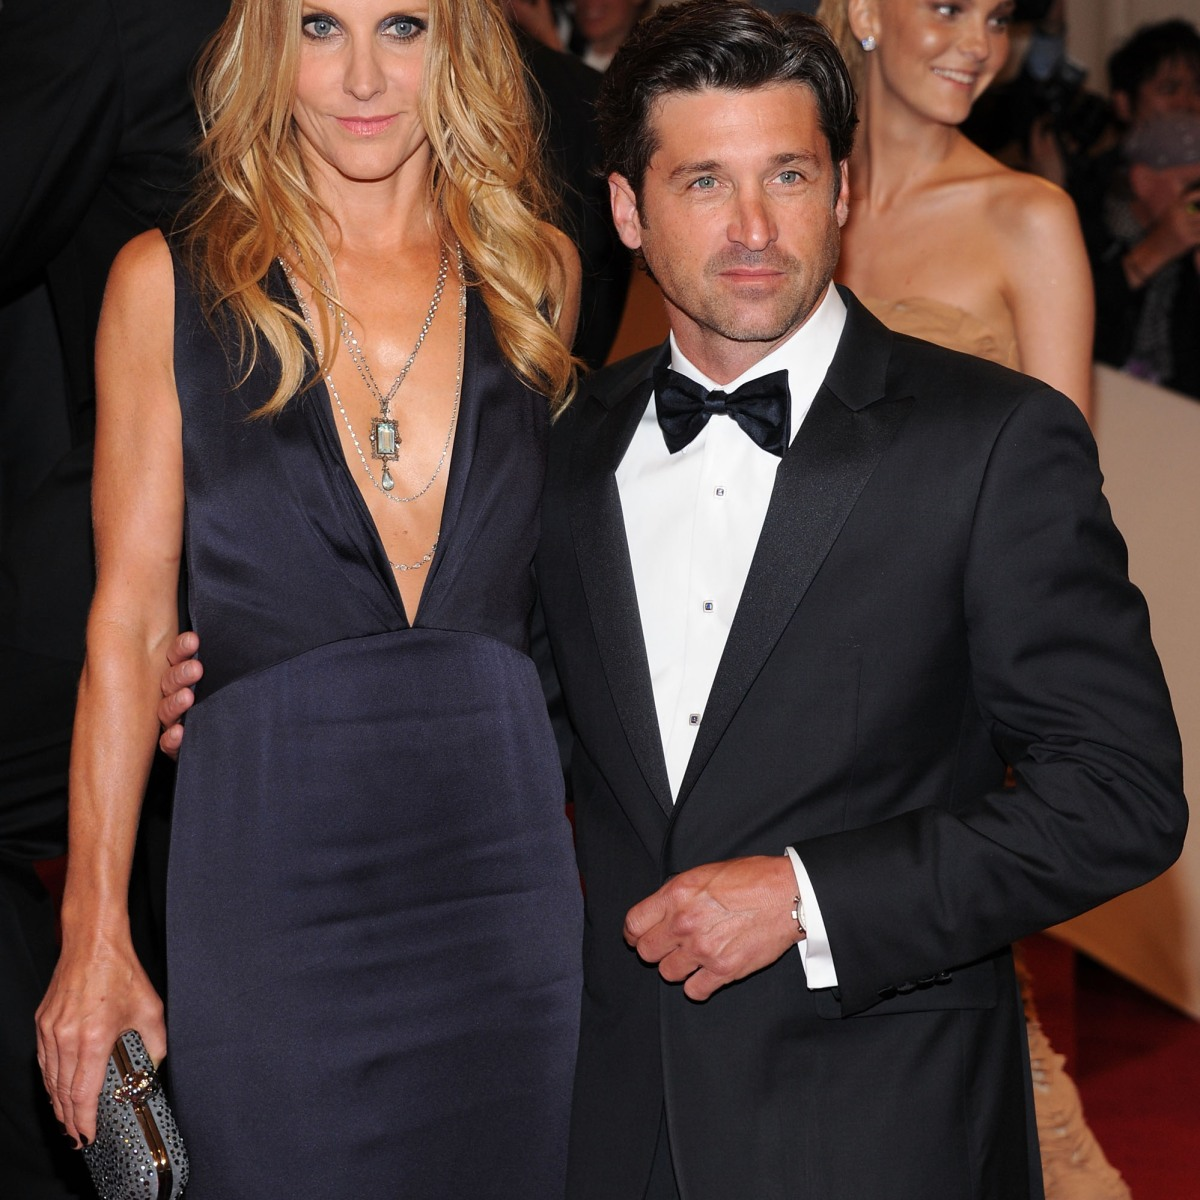 Patrick Dempsey Reconciles With Wife Jillian Fink Reveals Why He